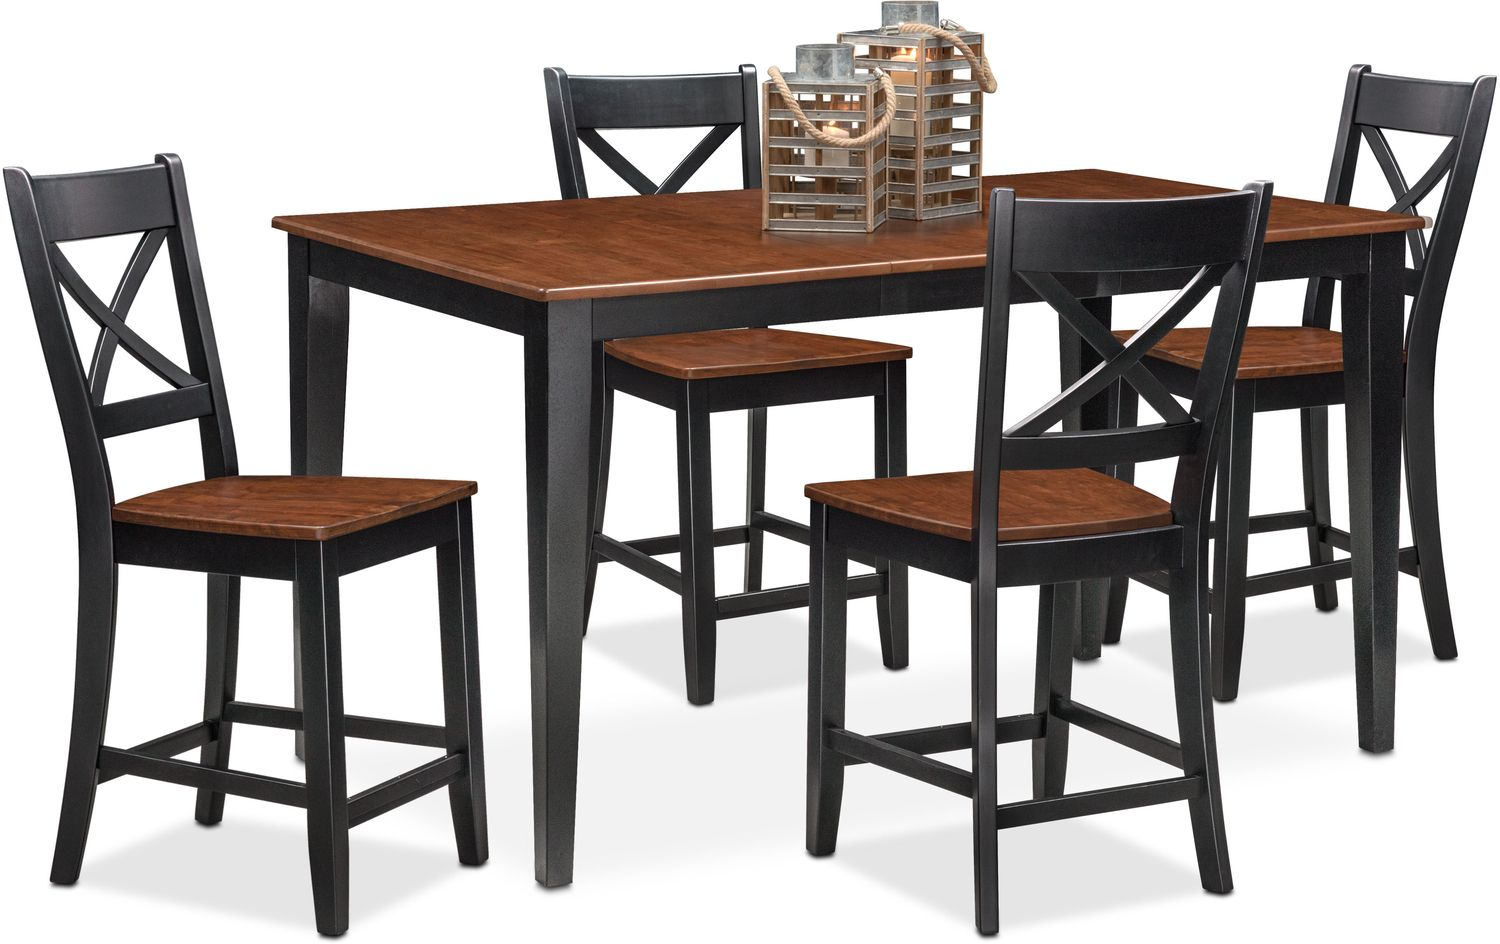 Dining Room Furniture - Nantucket Counter-Height Table and 4 Side Chairs